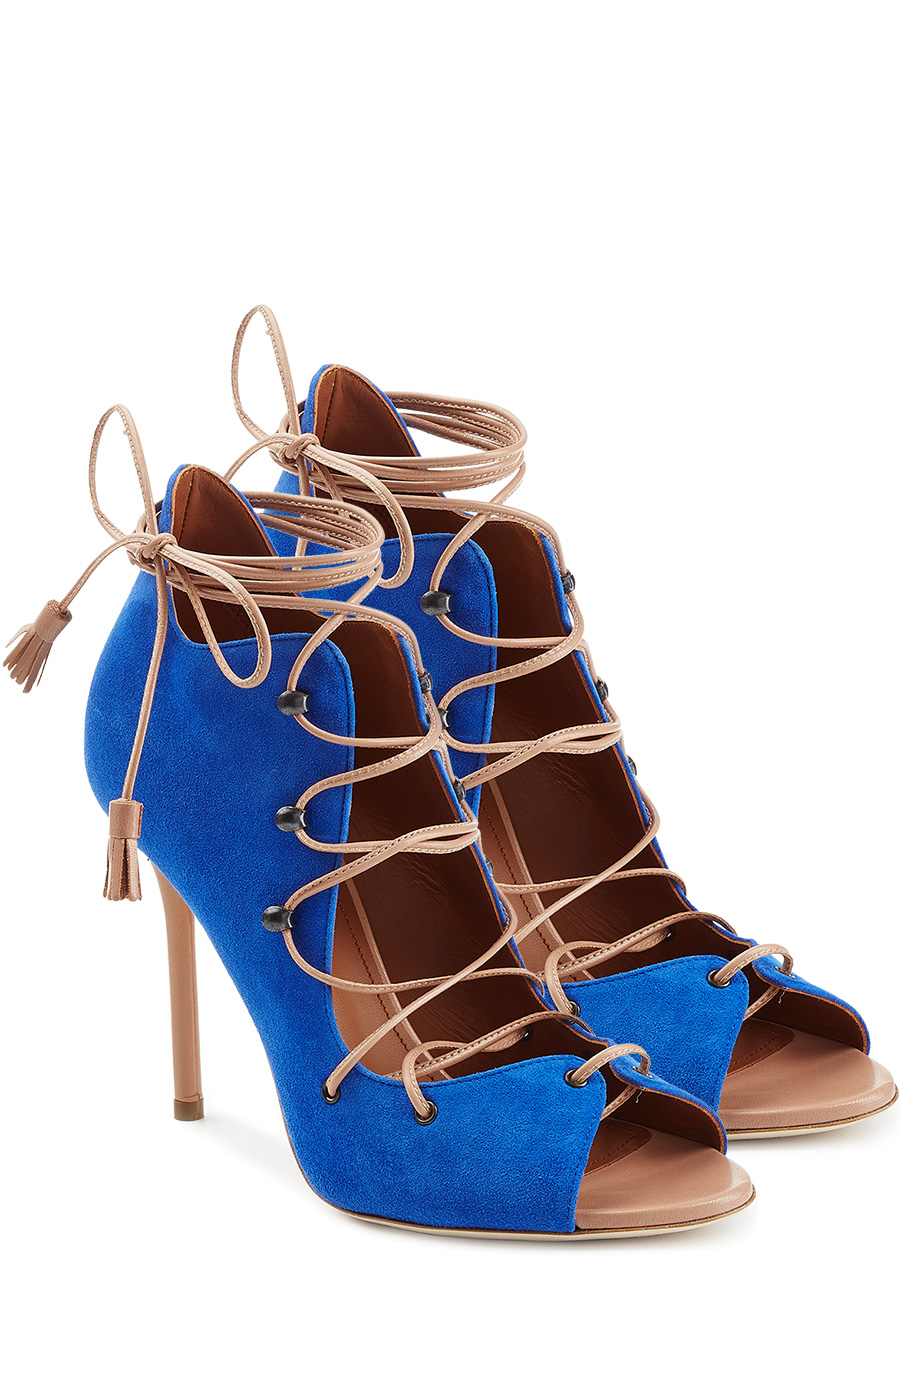 Malone Souliers Sherry Suede Stiletto Sandals In Blue